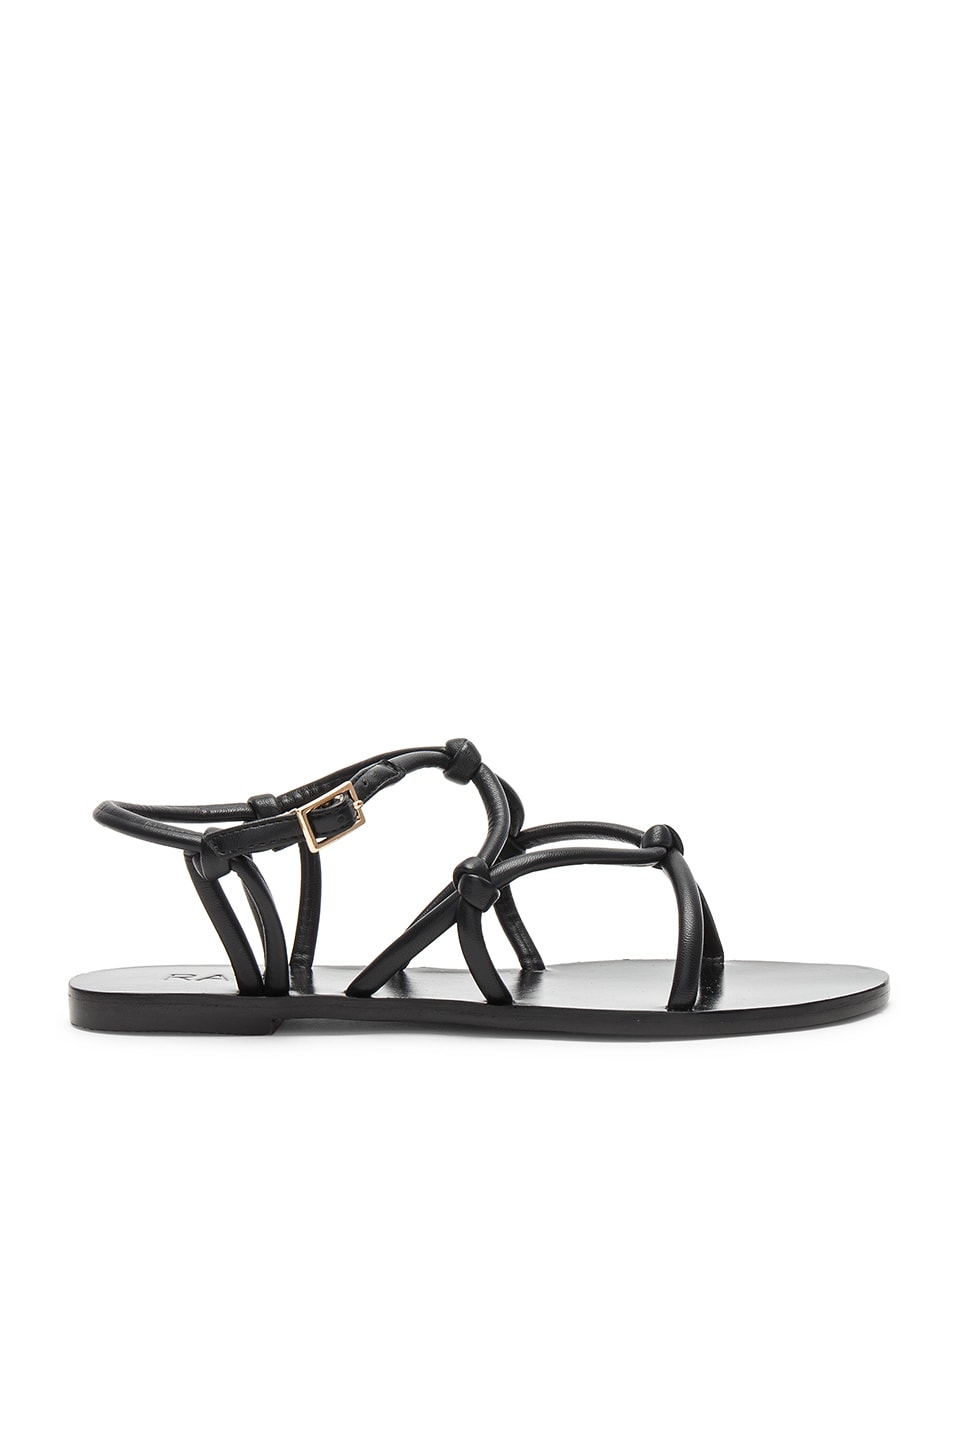 RAYE Danica Sandal in Black